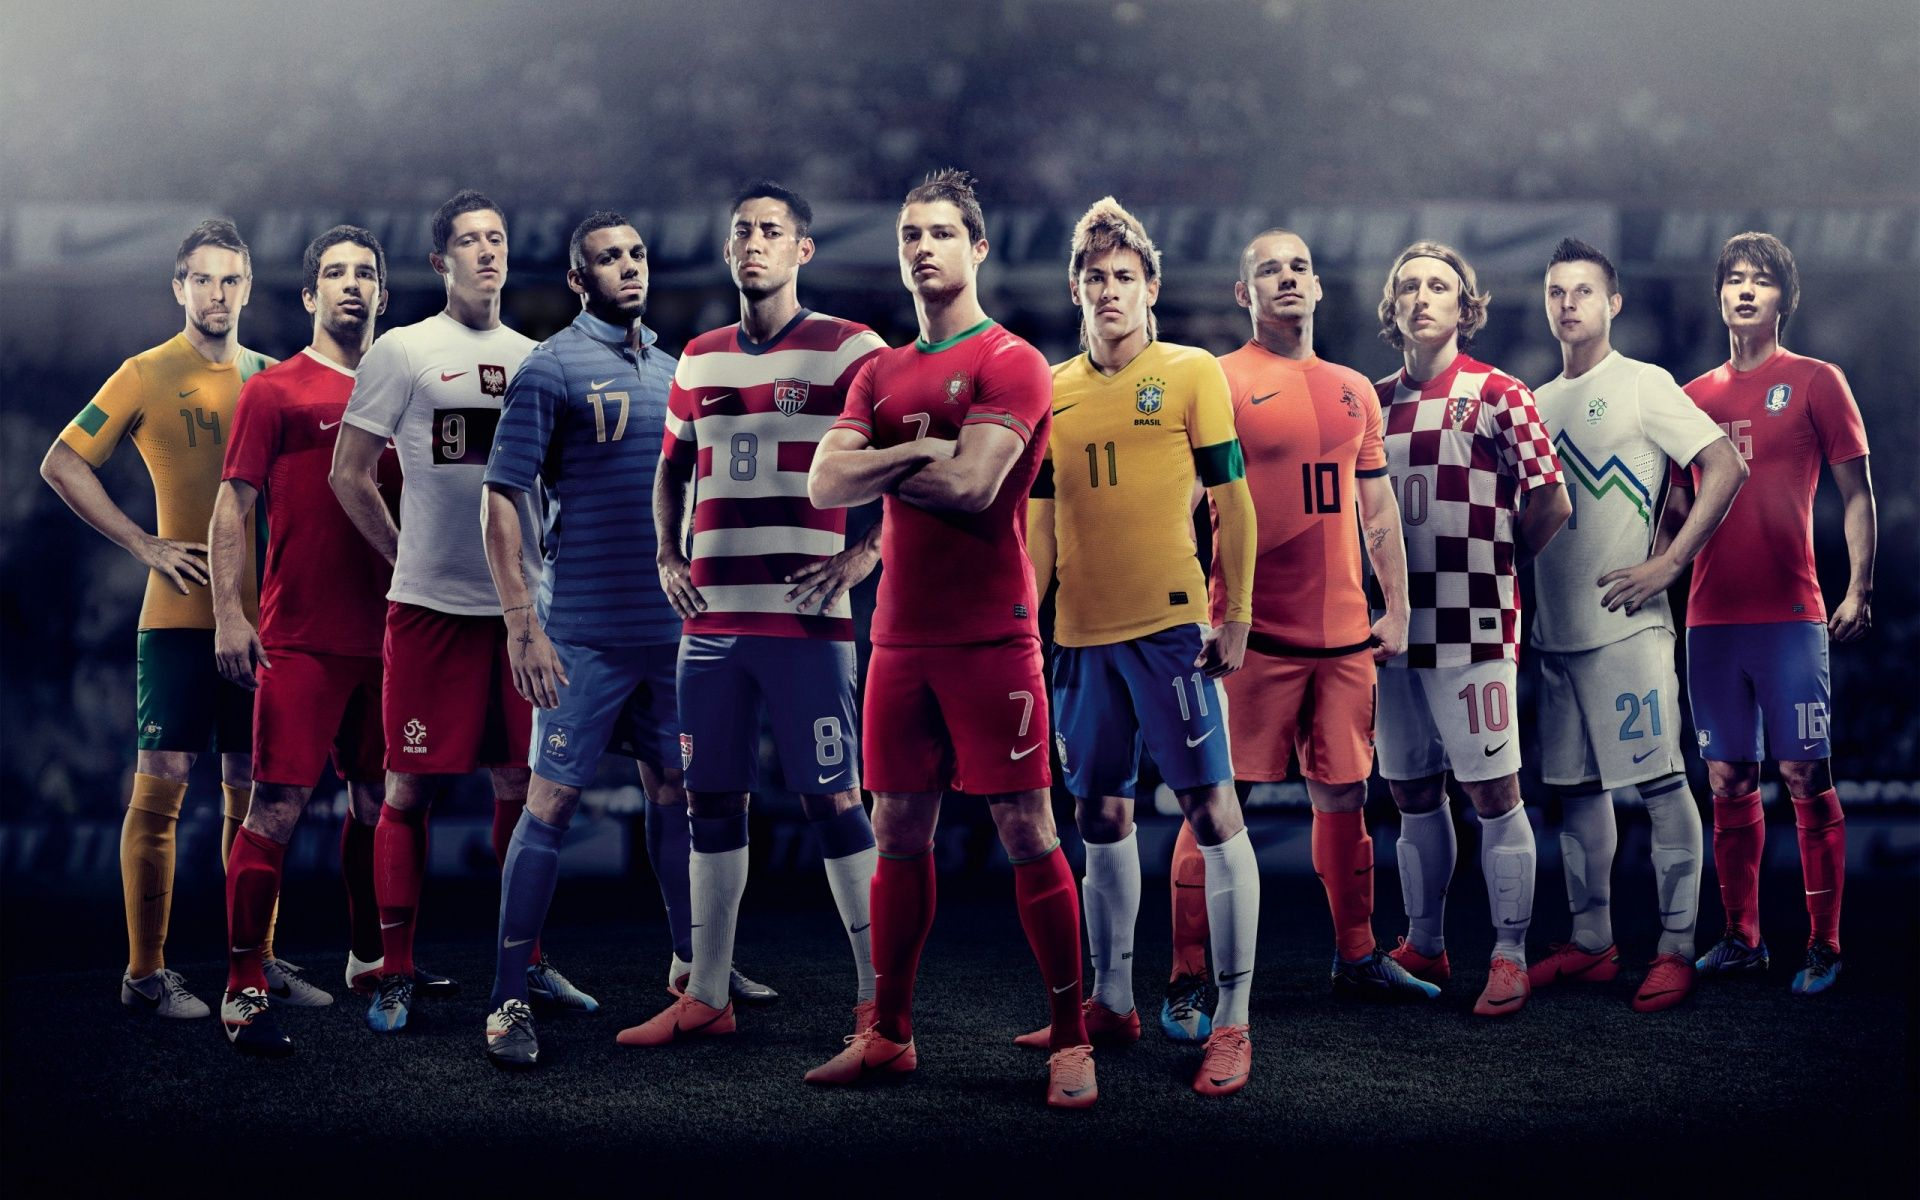 football players hd background 9 hd wallpapers | my stuff | nike